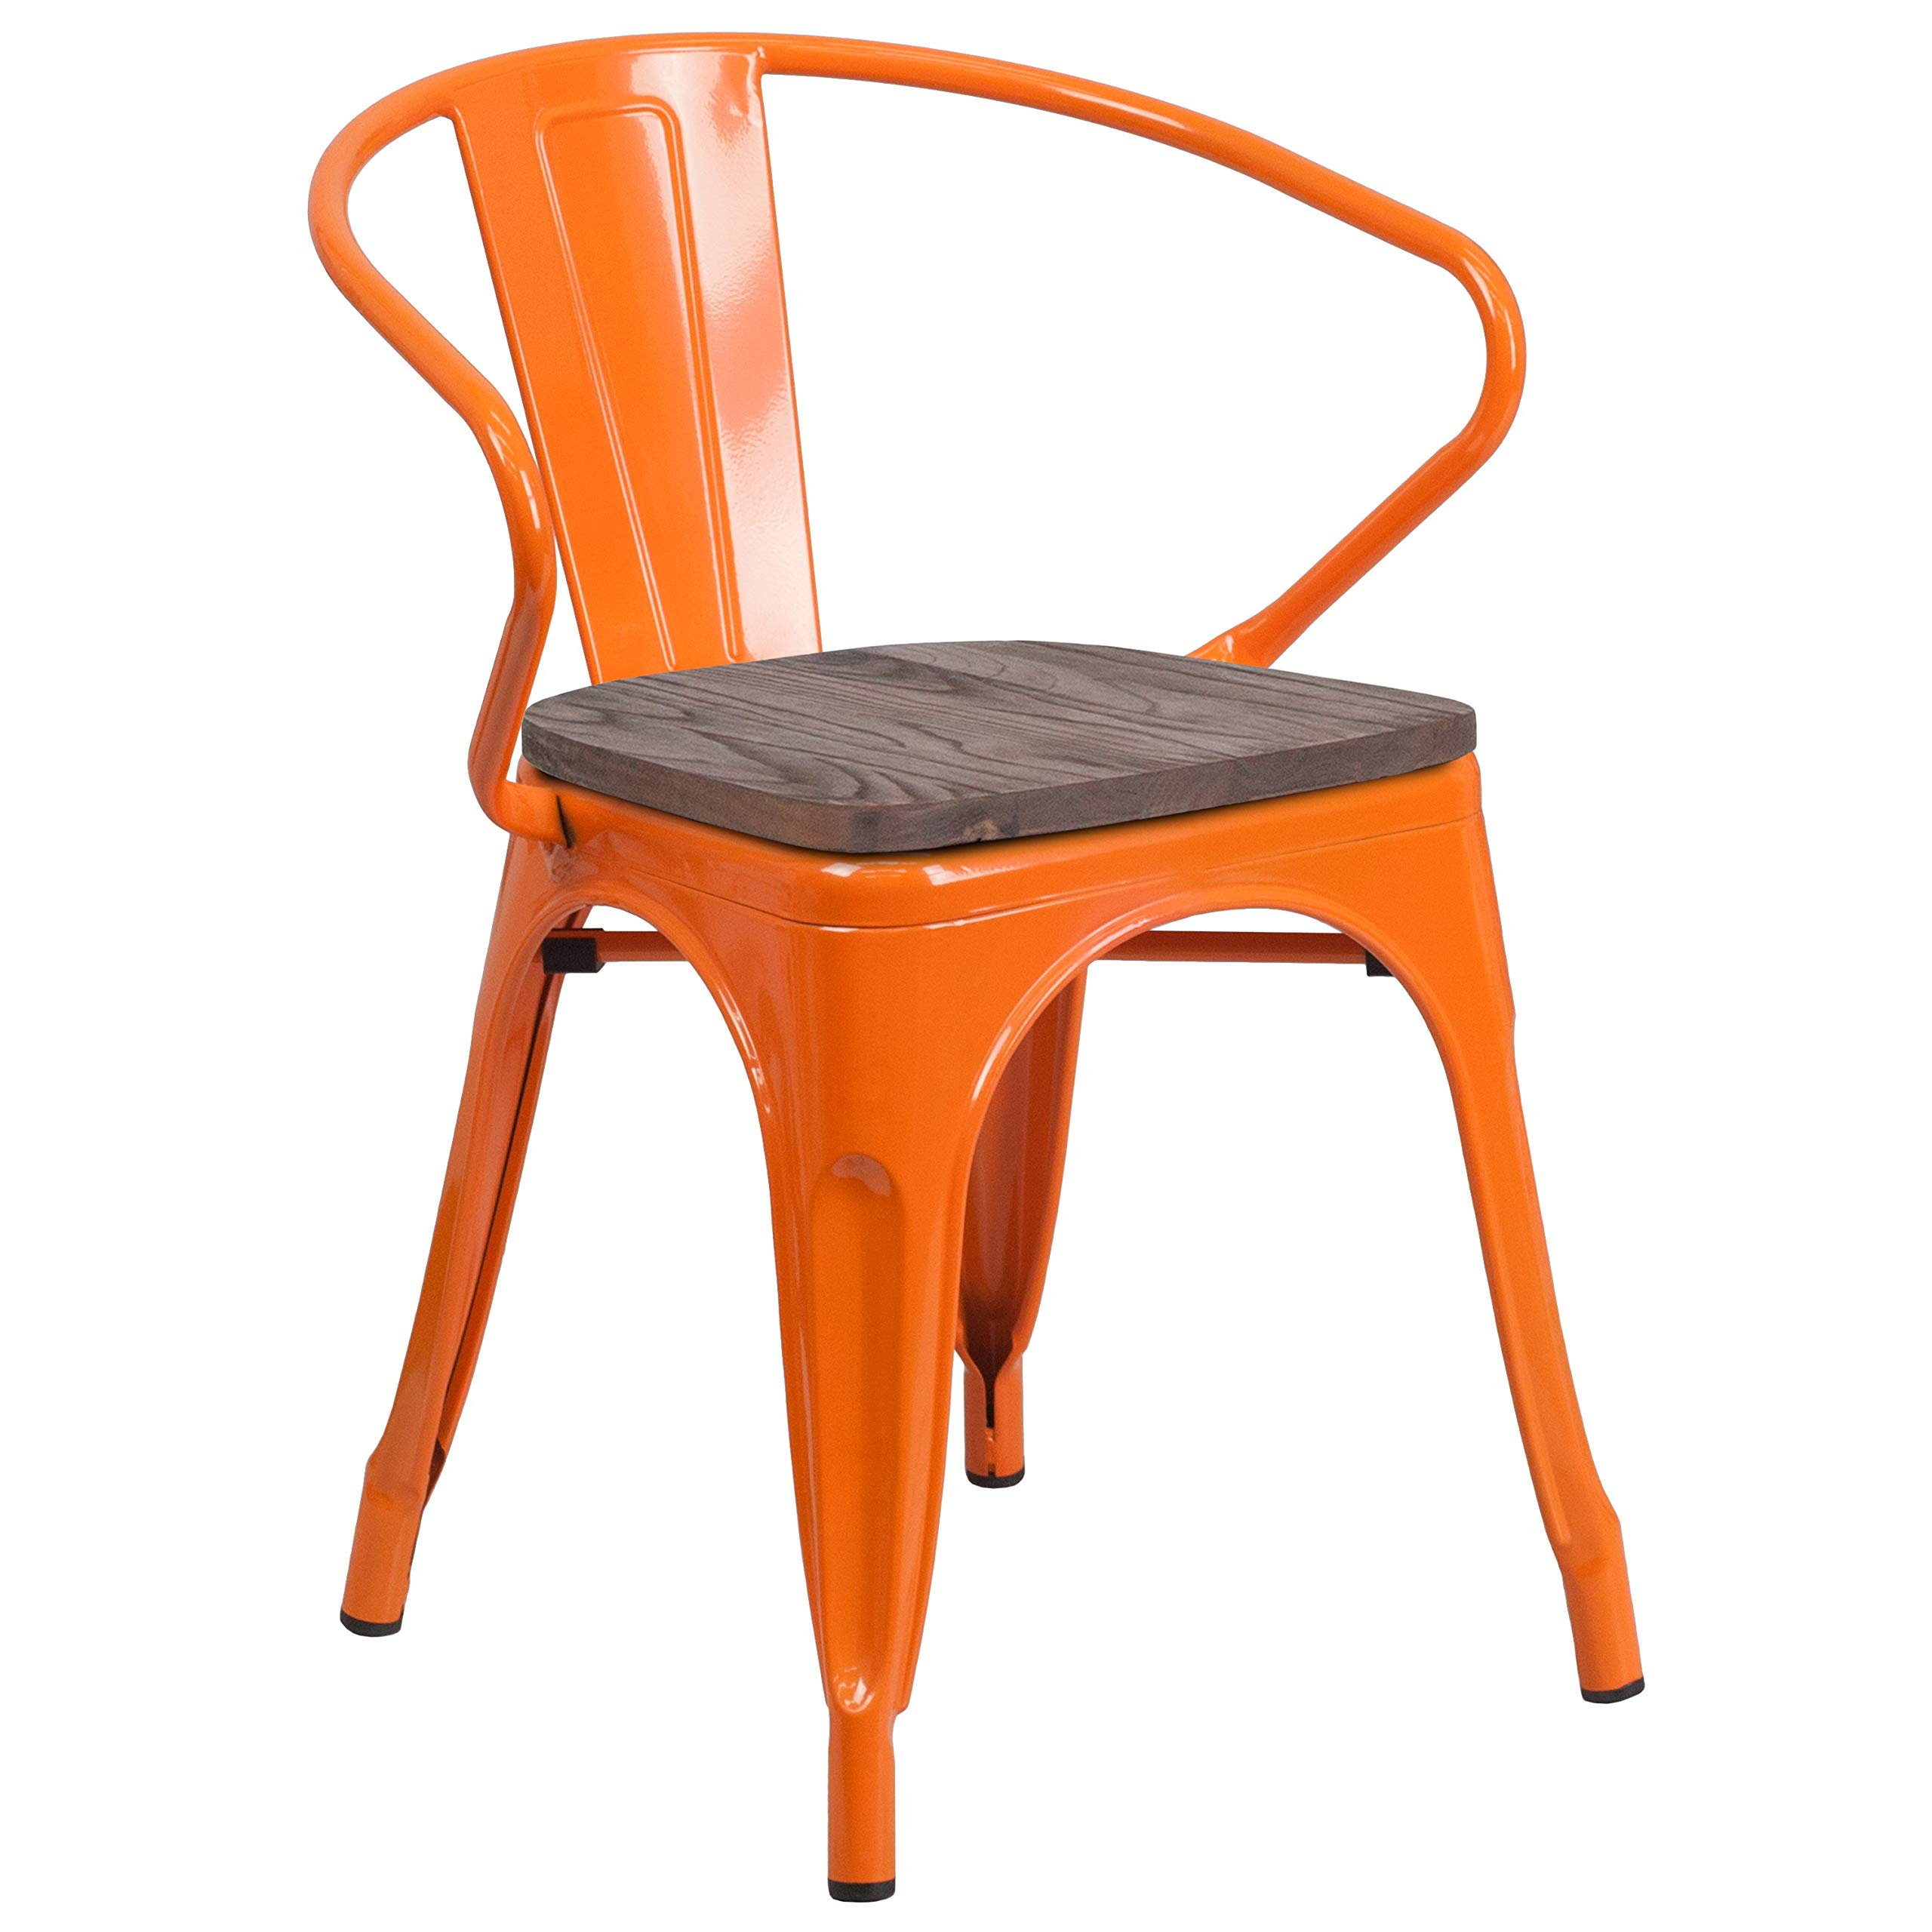 MFO Orange Metal Chair with Wood Seat and Arms